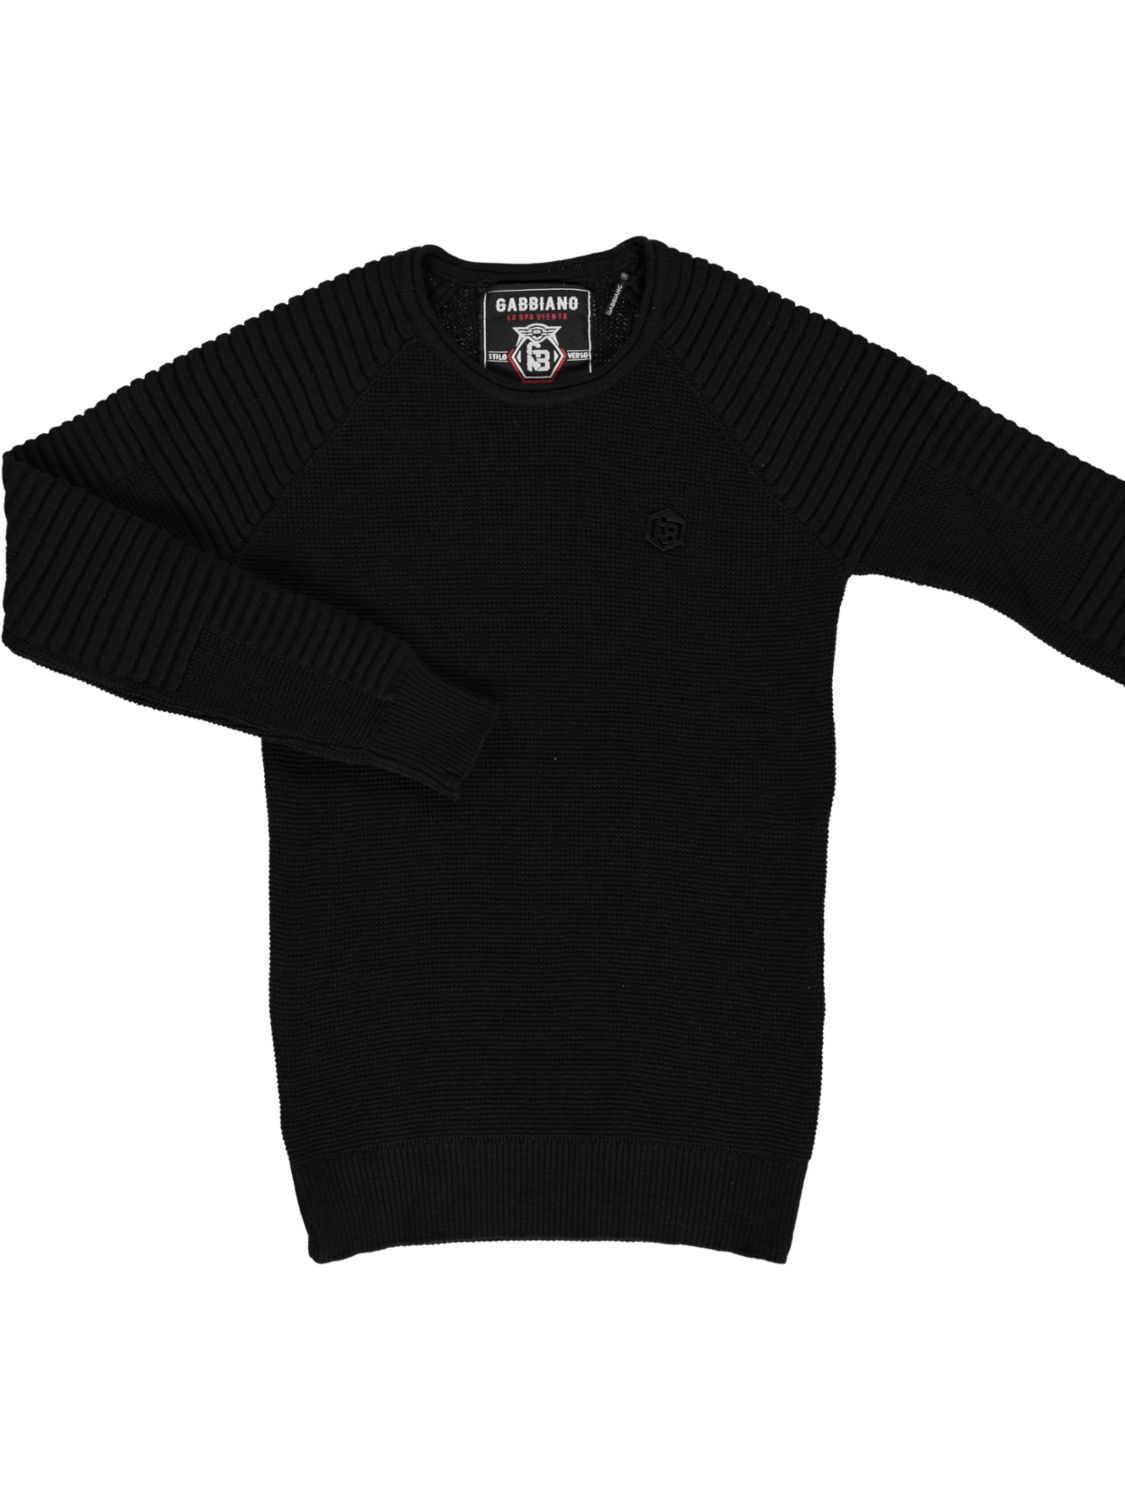 Gabbiano Sweater